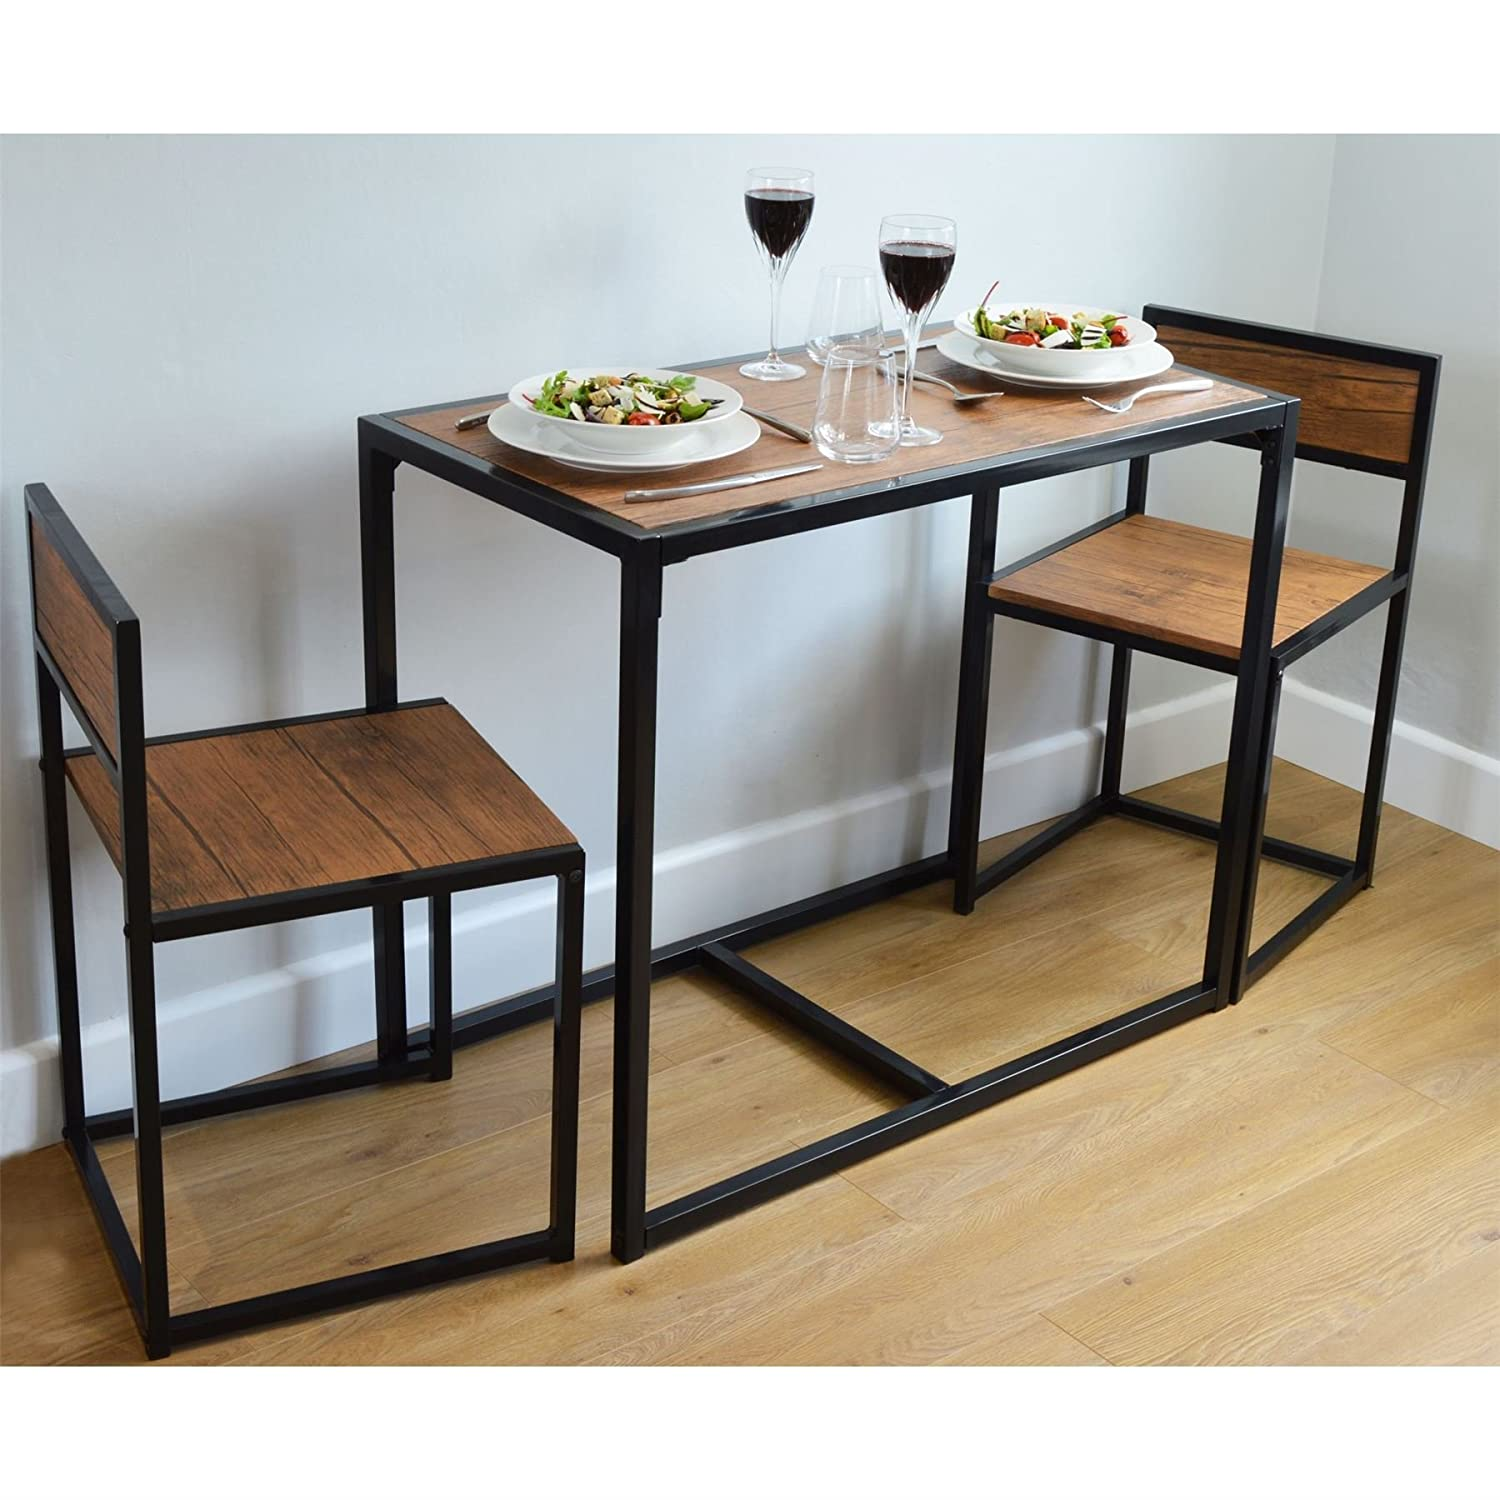 Harbour Housewares 2 Person Space Saving, Compact, Kitchen Dining ...